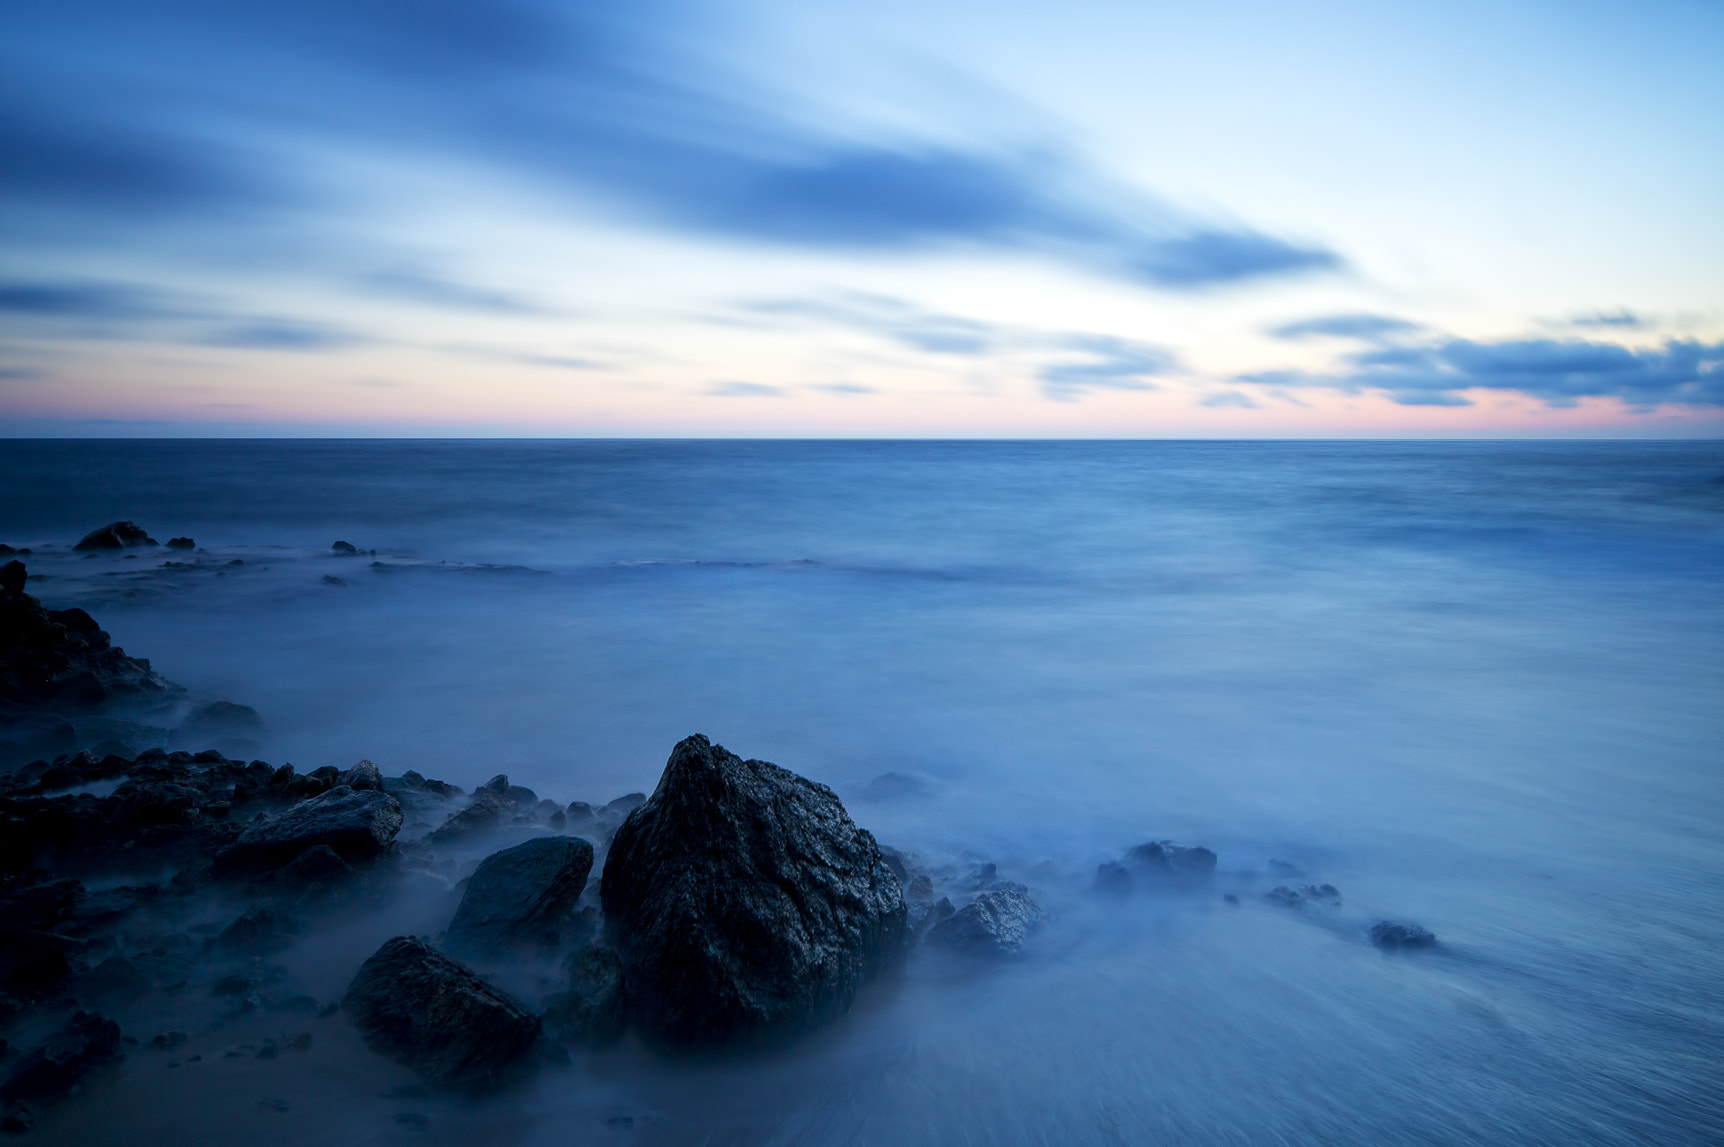 Photograph Seascape by Roy Zipstein on 500px